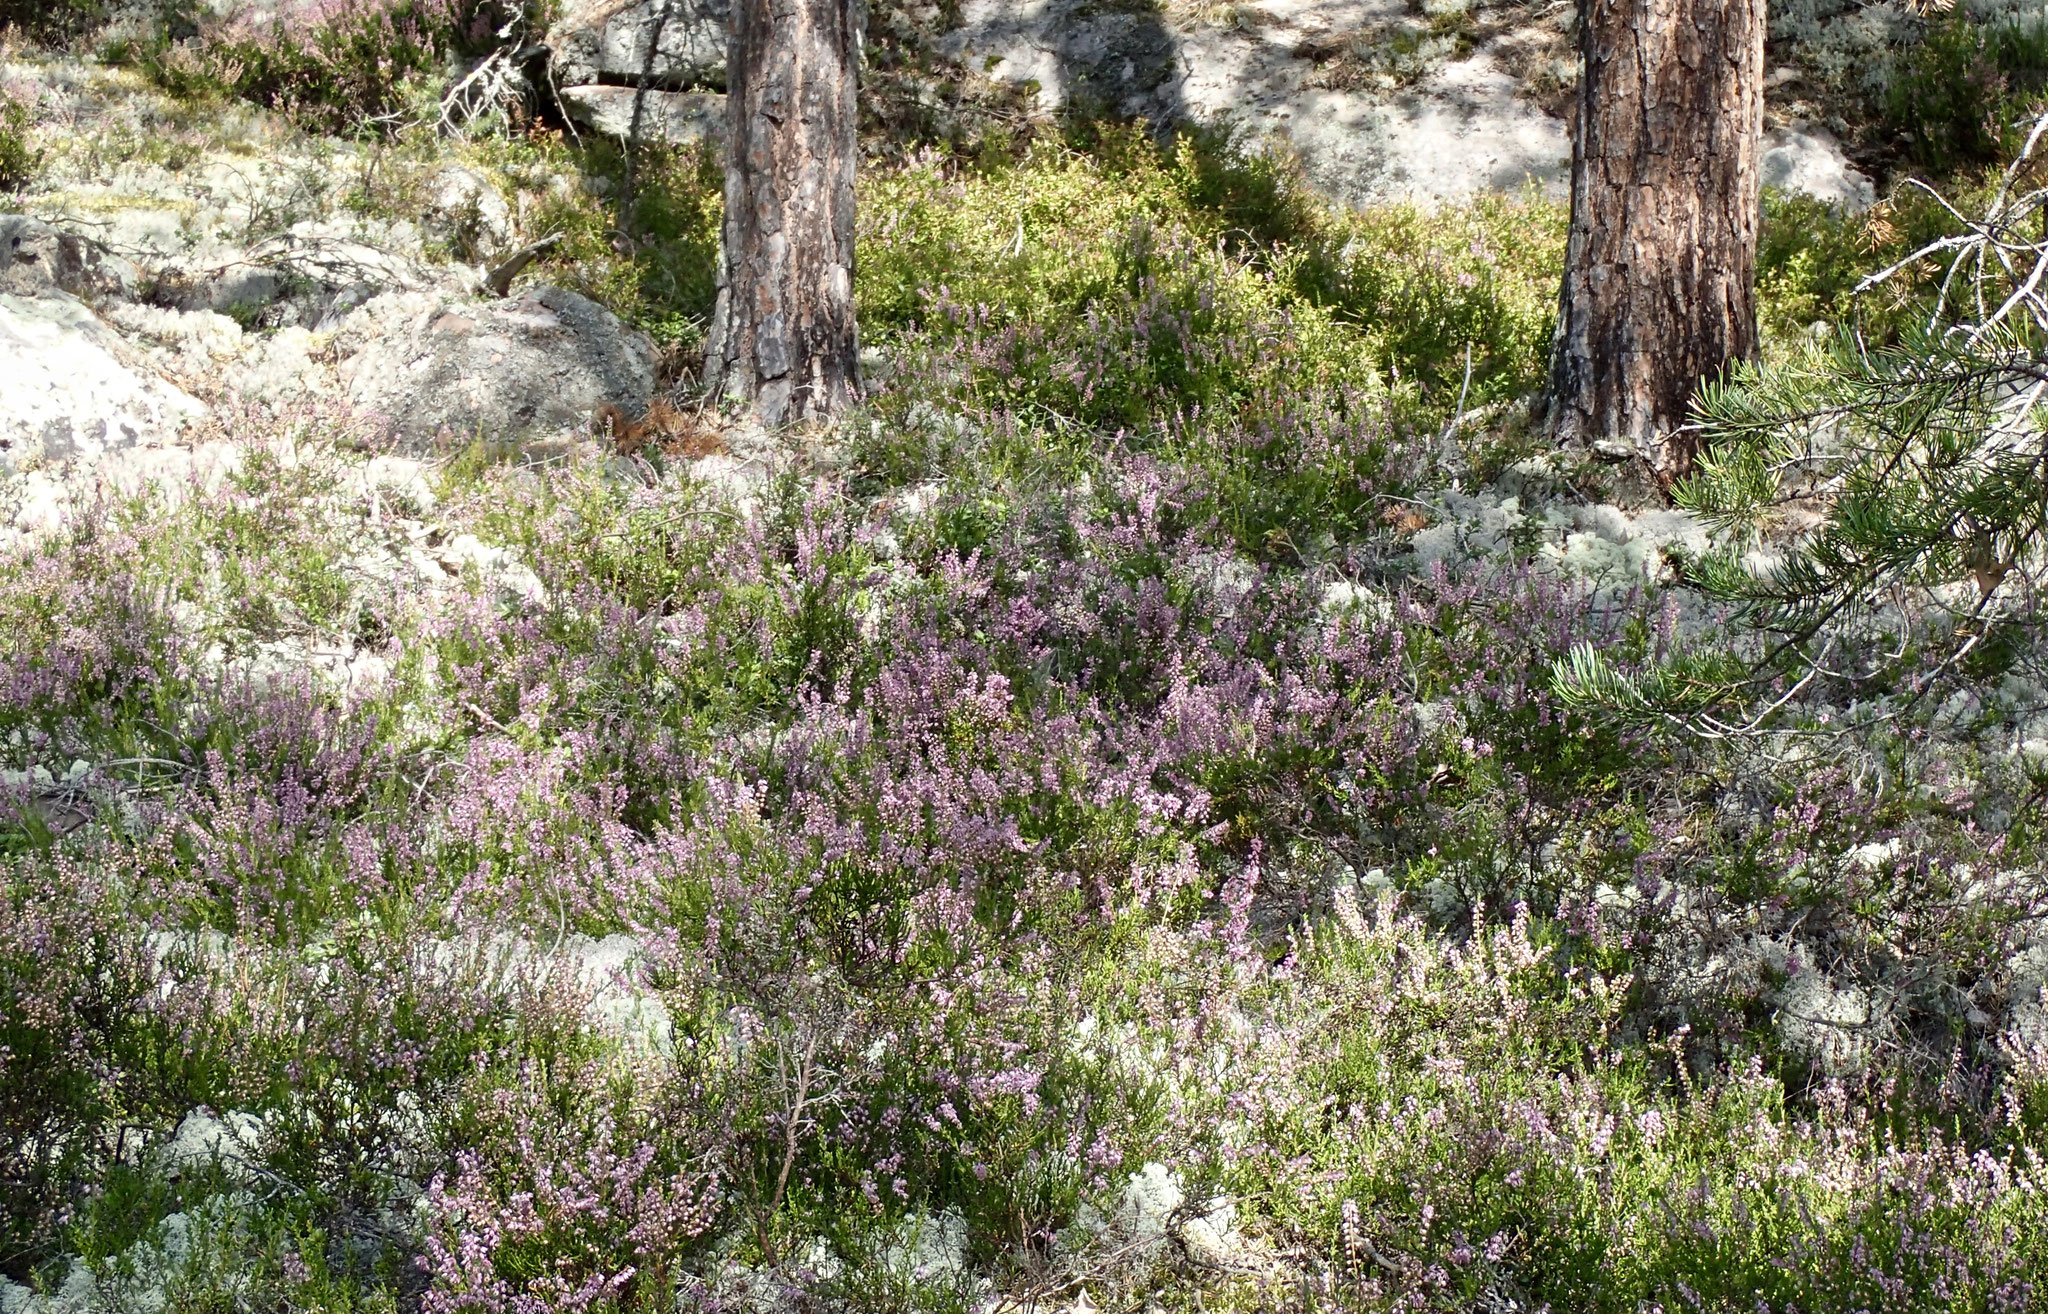 Heath blossom with moss and berries